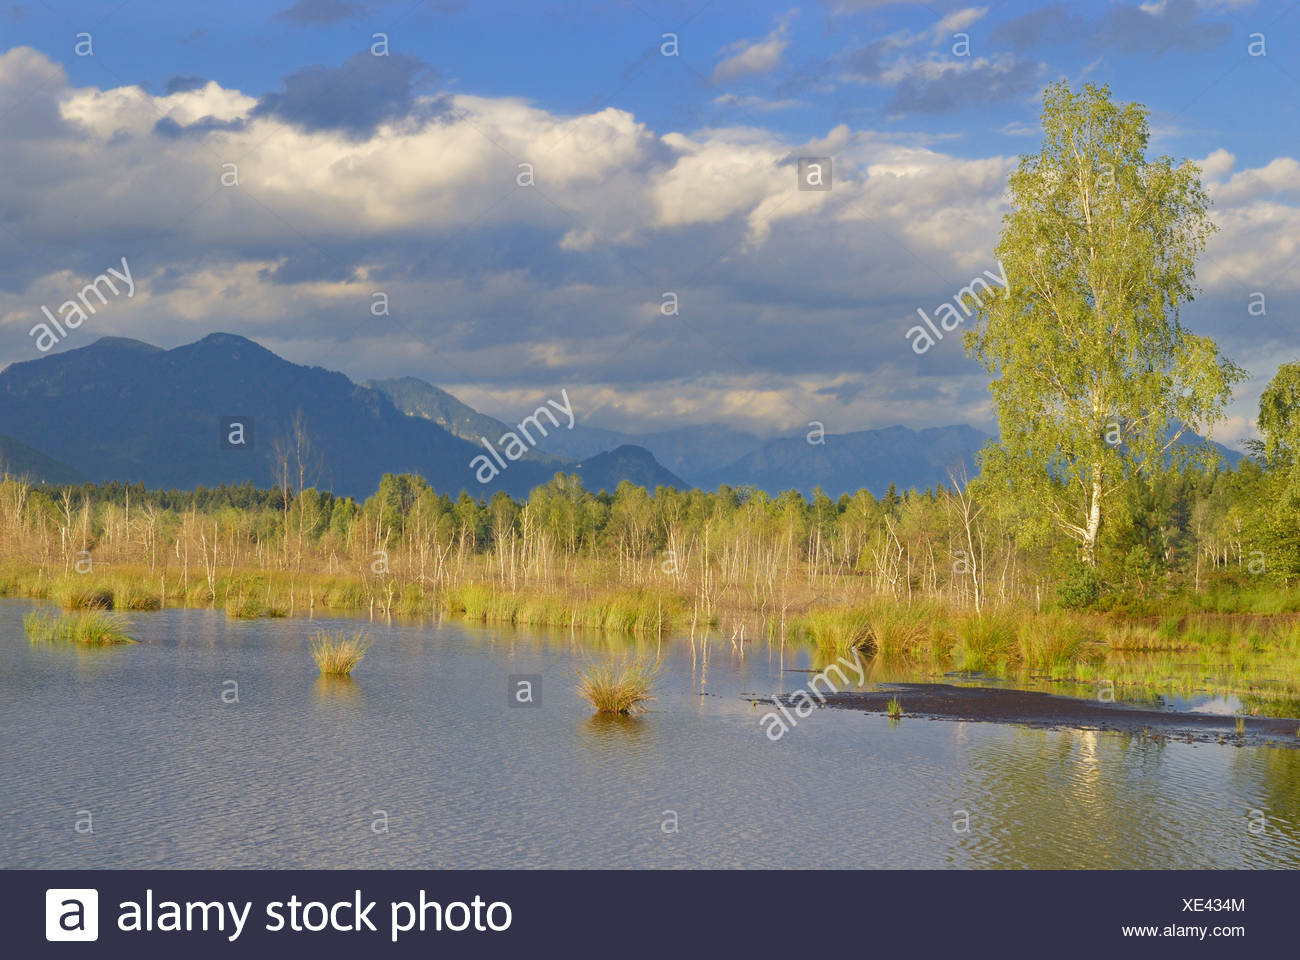 Moor pond with birches (Betula pubenscens) and mountains, foothills of the Alps, Grundbeckenmoor area, Nicklheim, Bavaria, Germ Stock Photo